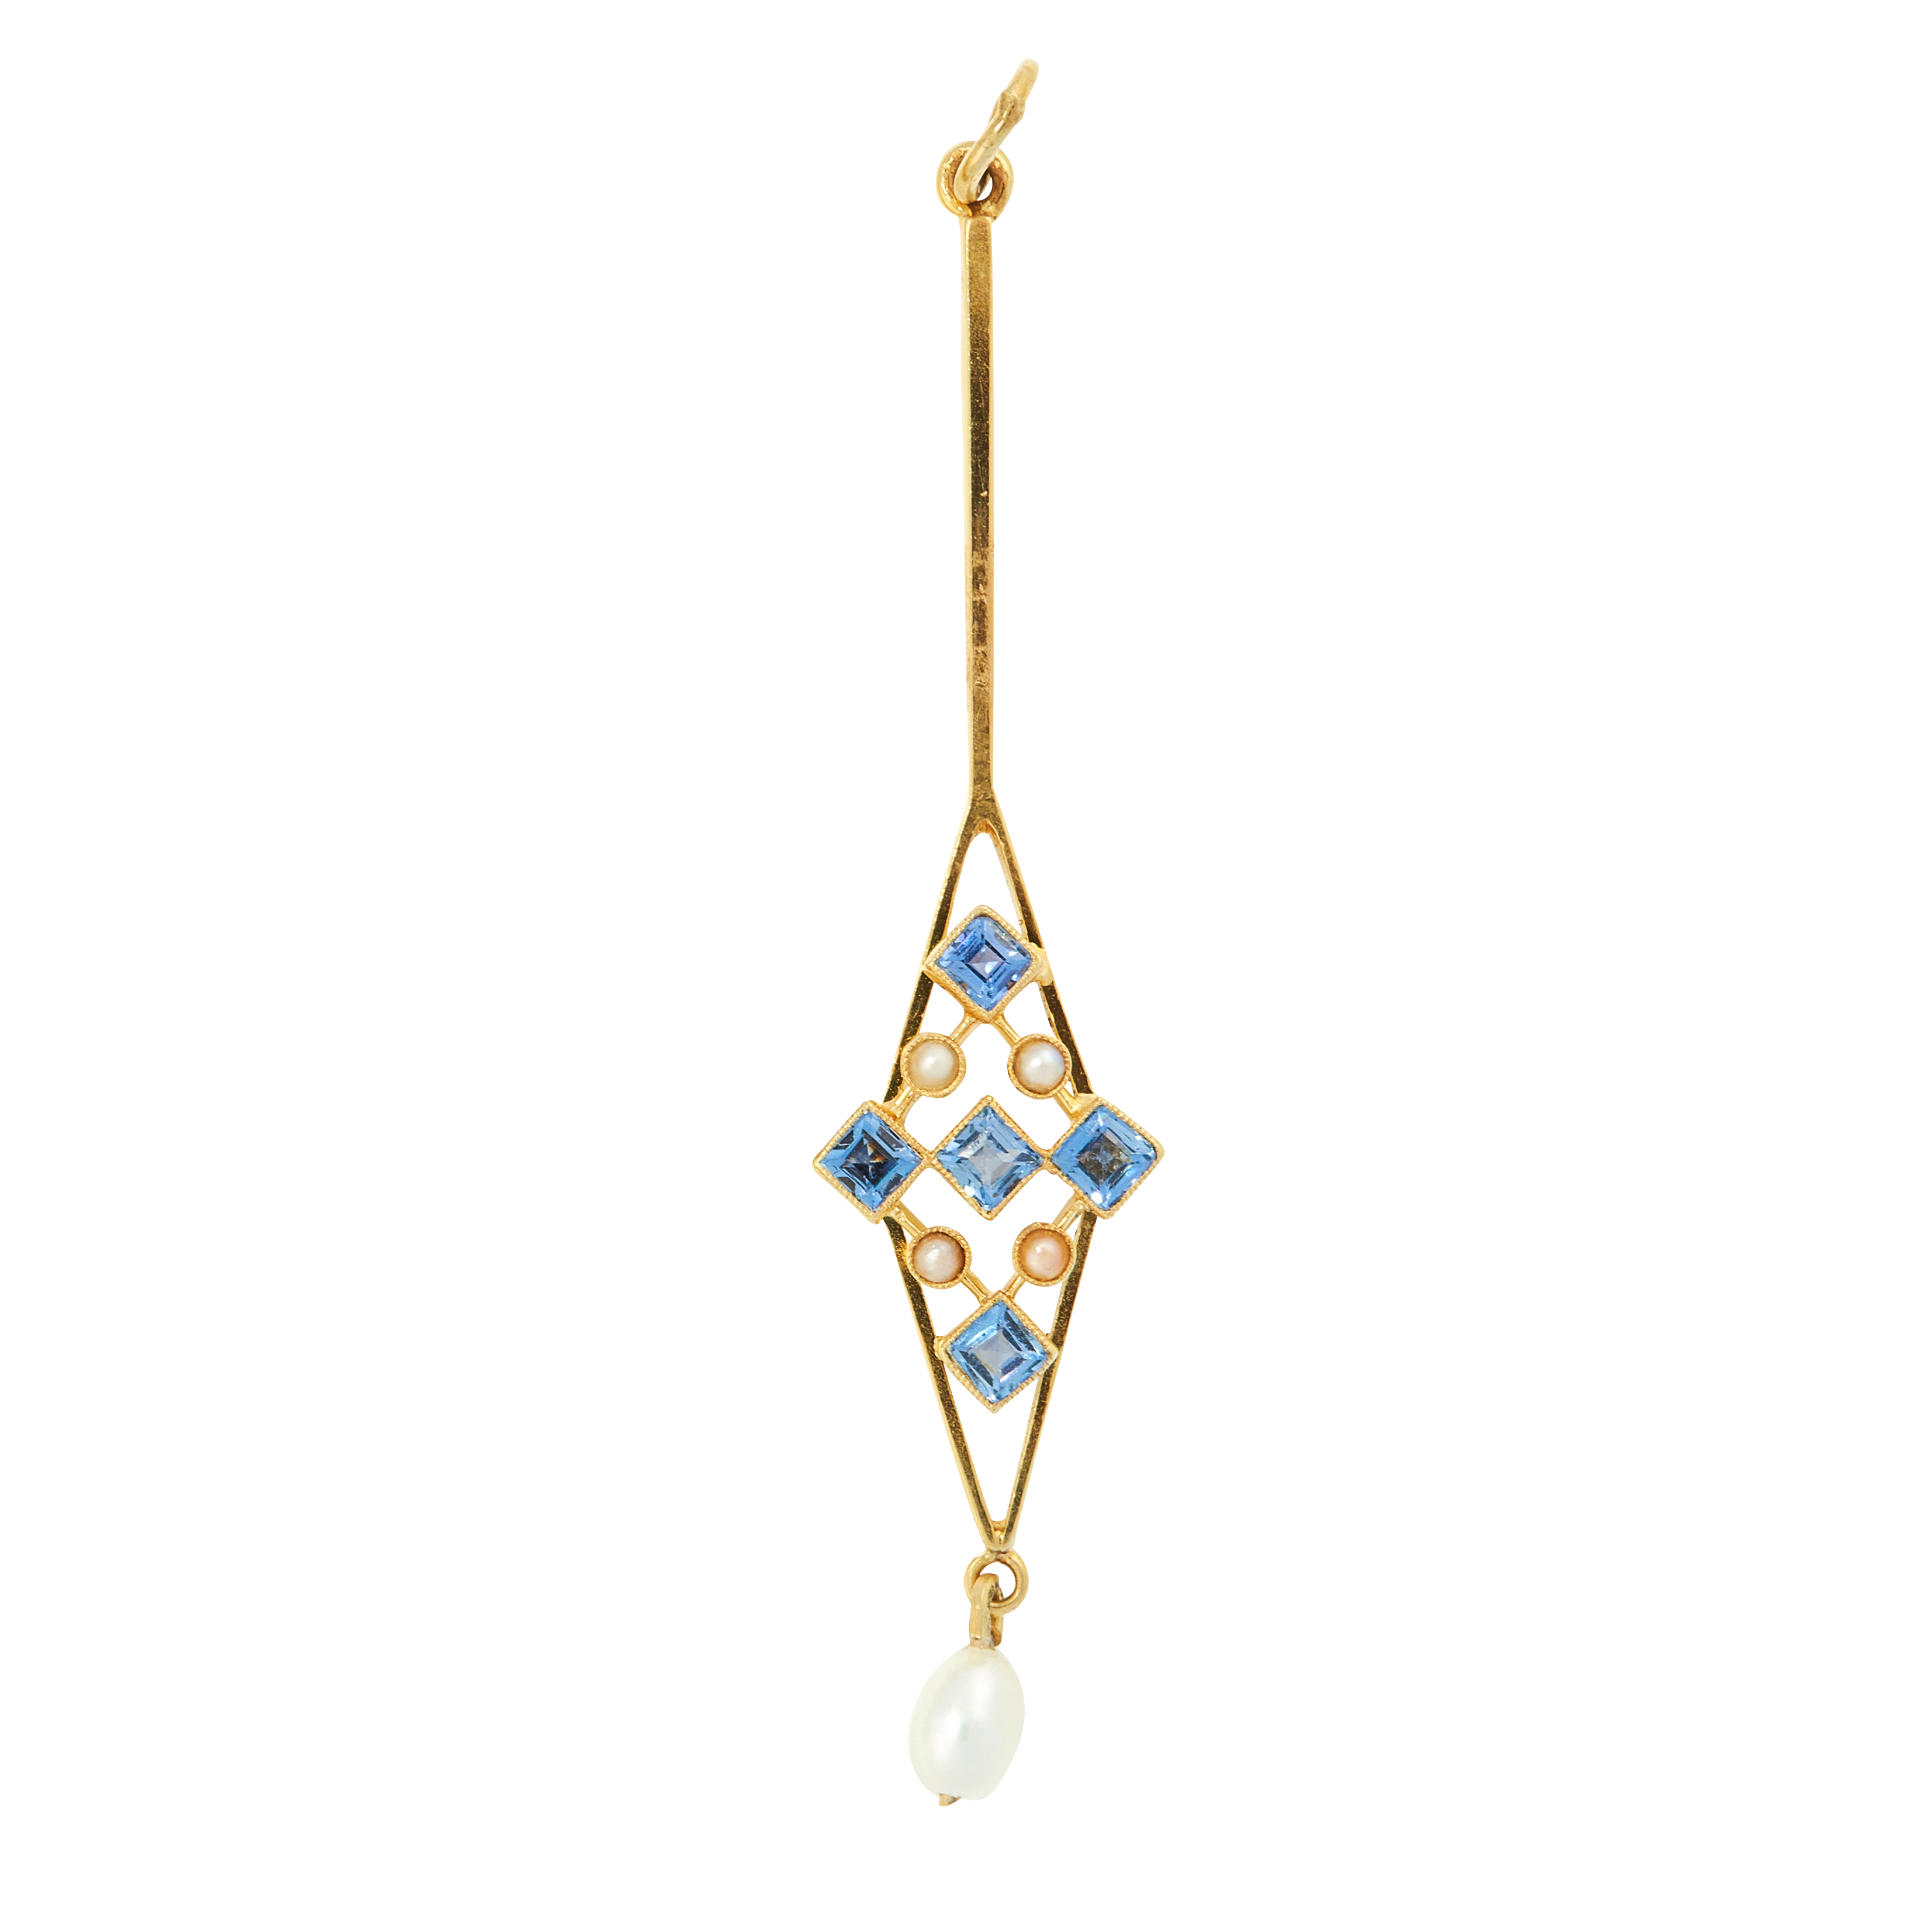 AN ANTIQUE SAPPHIRE AND PEARL PENDANT, EARLY 20TH CENTURY in high carat yellow gold, the elongated